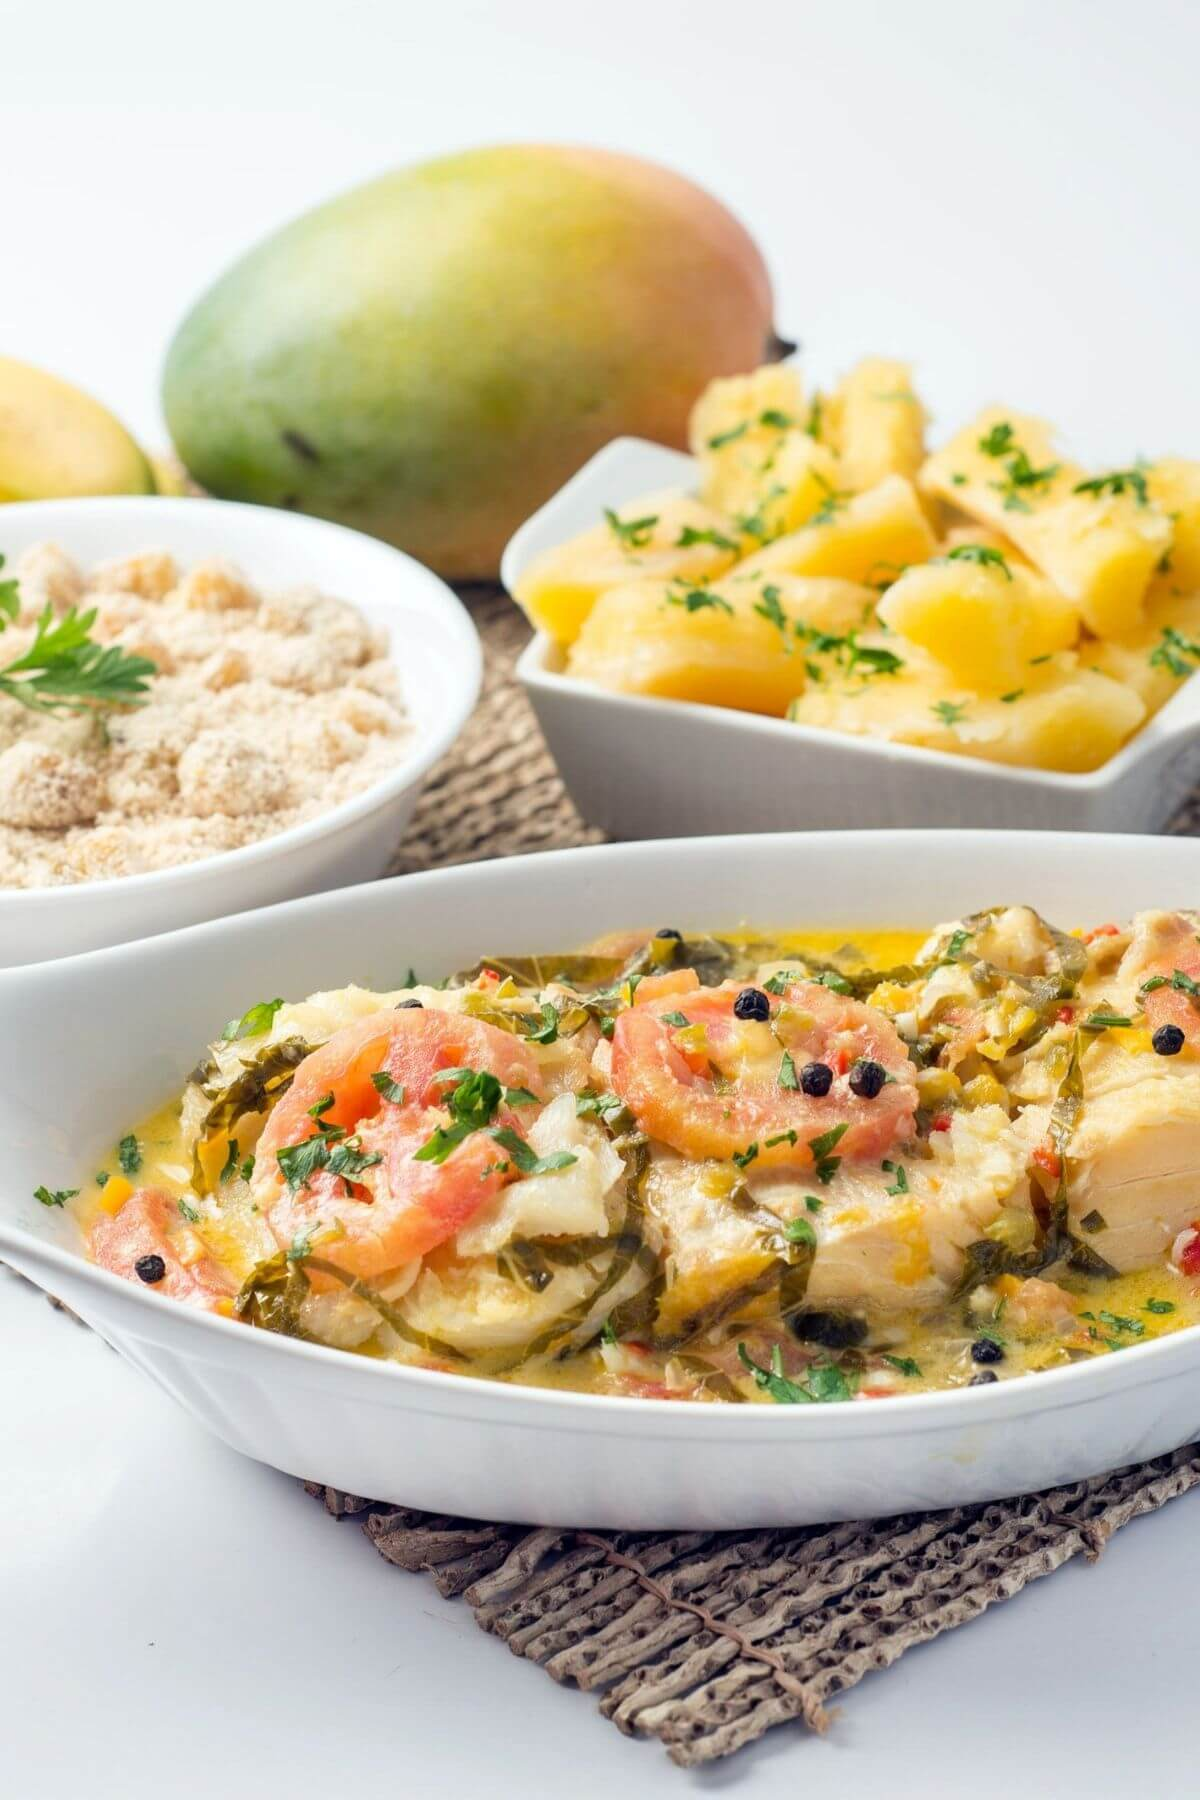 What to serve with fish side dishes